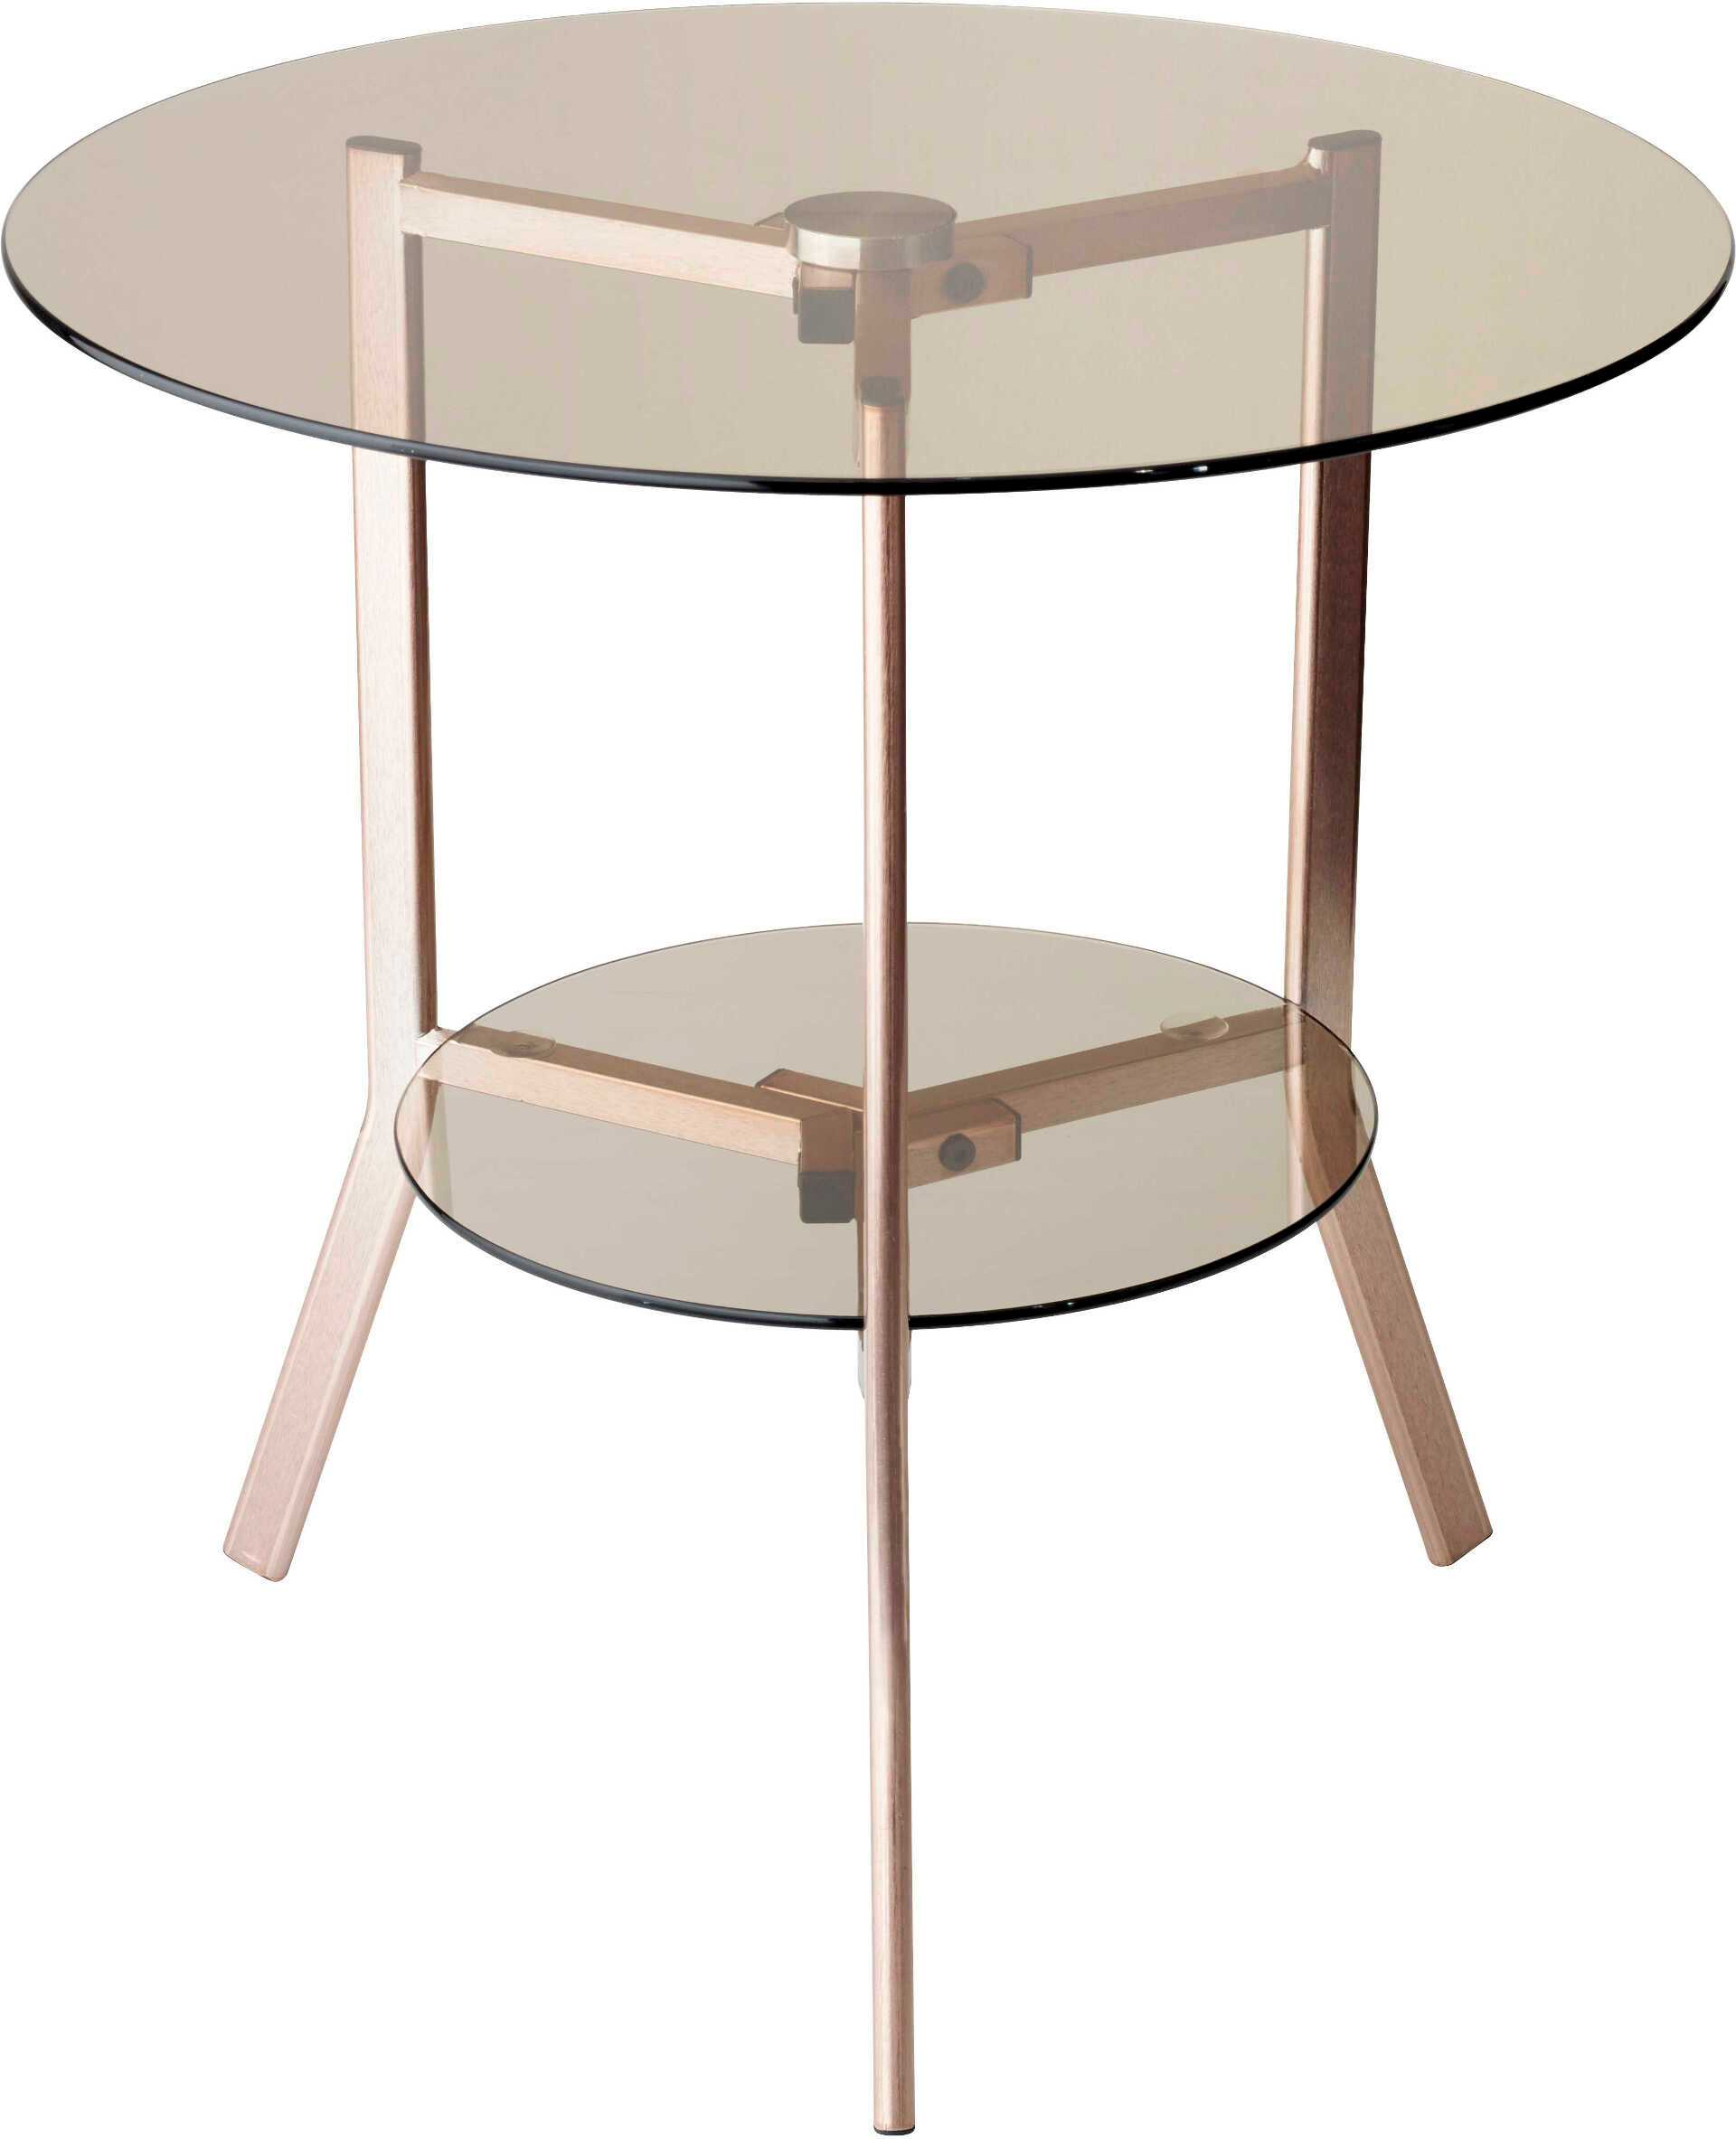 Phenomenal Gibson End Table Copper By Adesso Furniture Ibusinesslaw Wood Chair Design Ideas Ibusinesslaworg